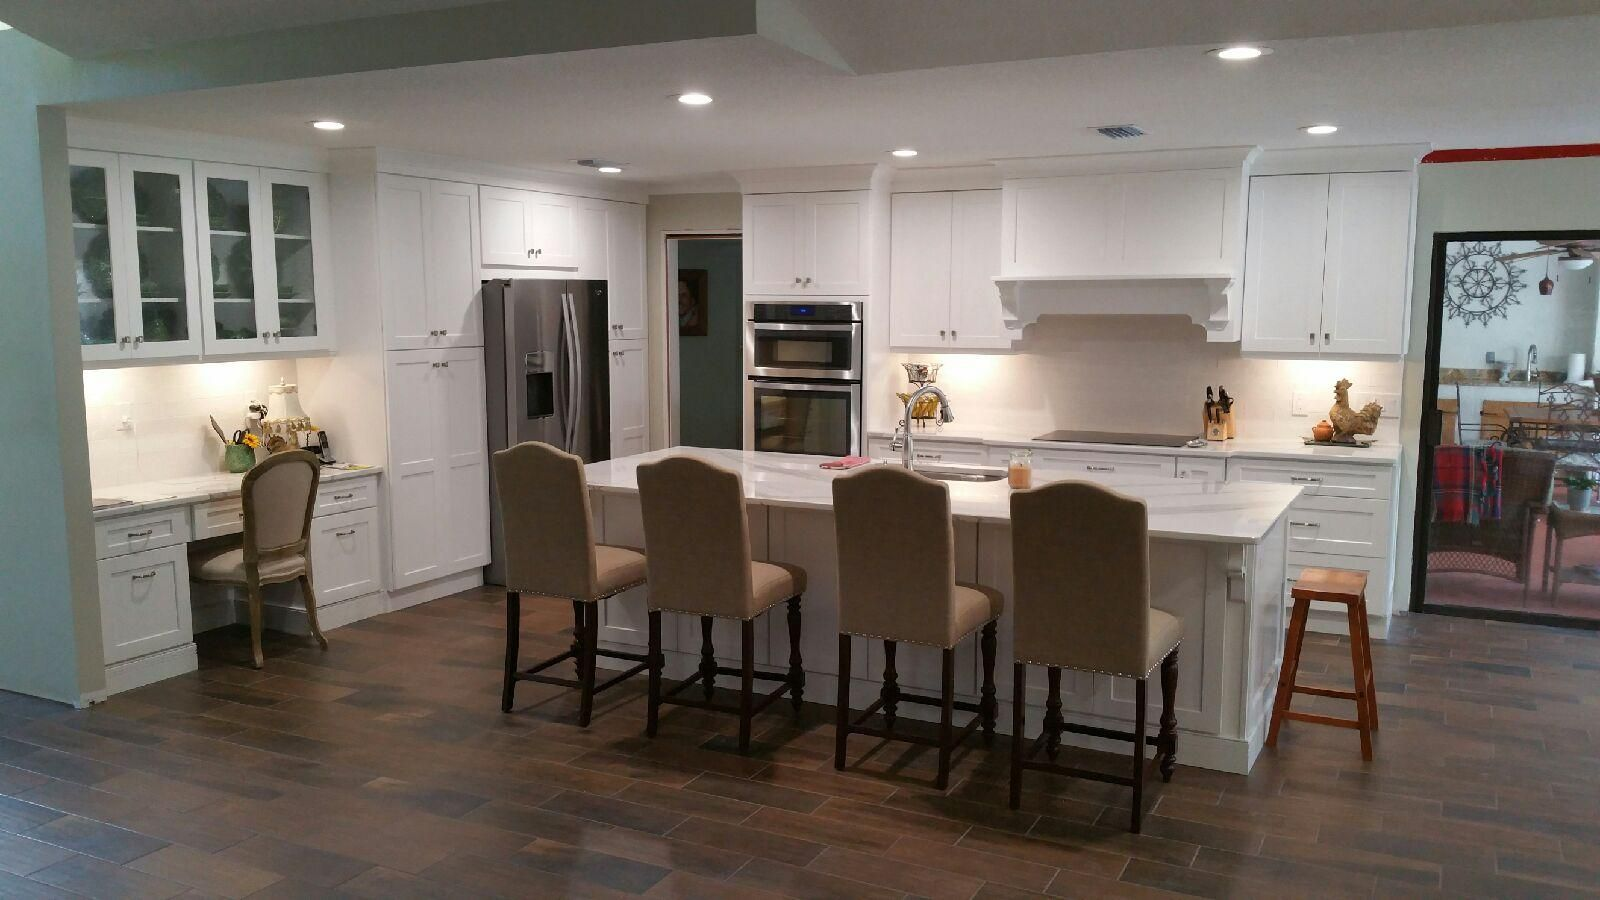 The bohrer kitchen after white shaker cabinetry daltile emblem 7 the bohrer kitchen after white shaker cabinetry daltile emblem 7 x 20 ceramic floor tile cambria quartz countertops in brittanica crossville cafe milk 3 dailygadgetfo Image collections